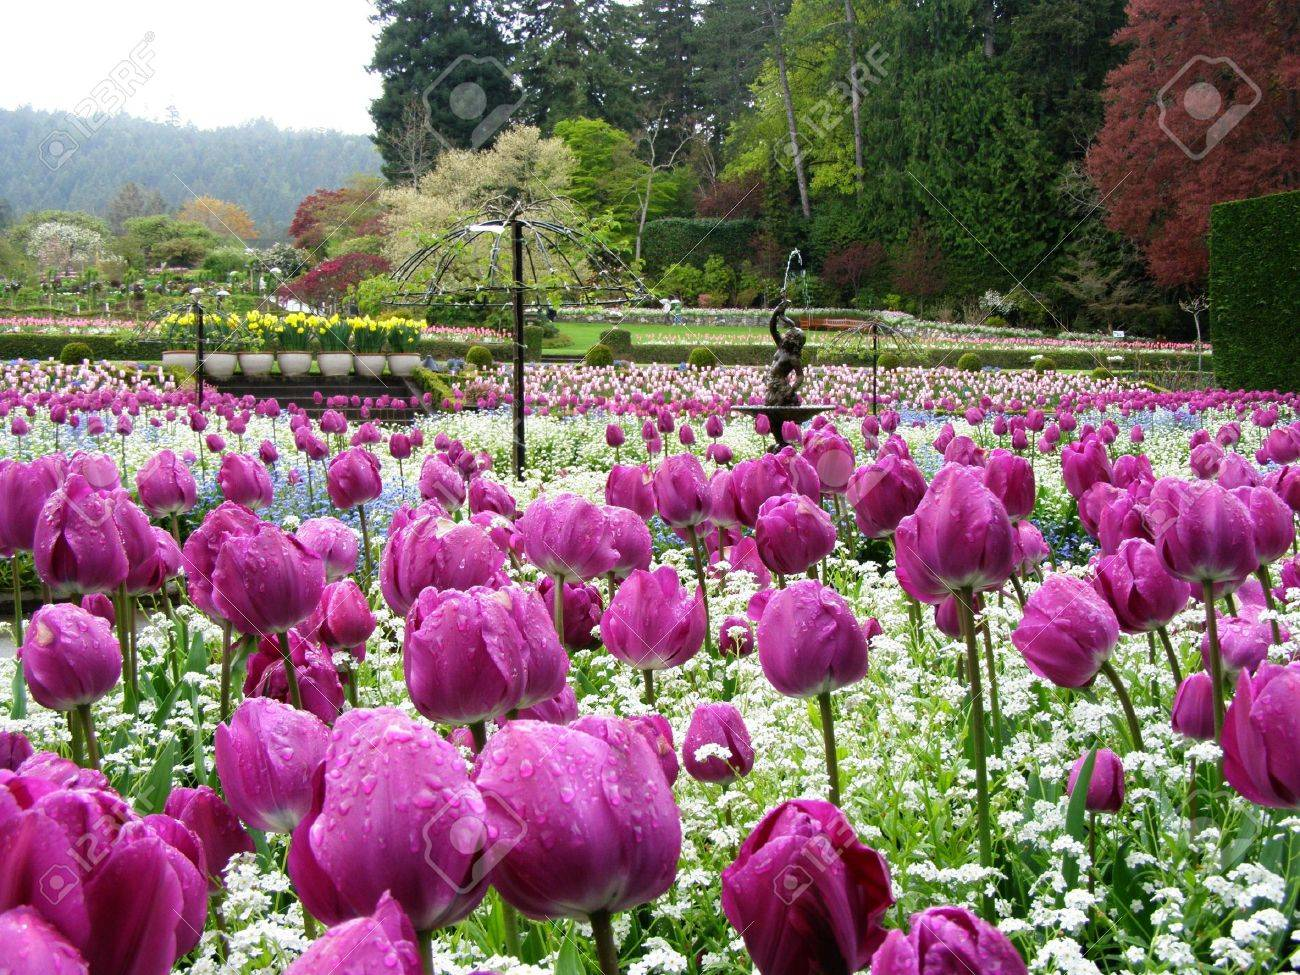 Vancouver to Victoria and Butchart Gardens Tour by Bus 2019